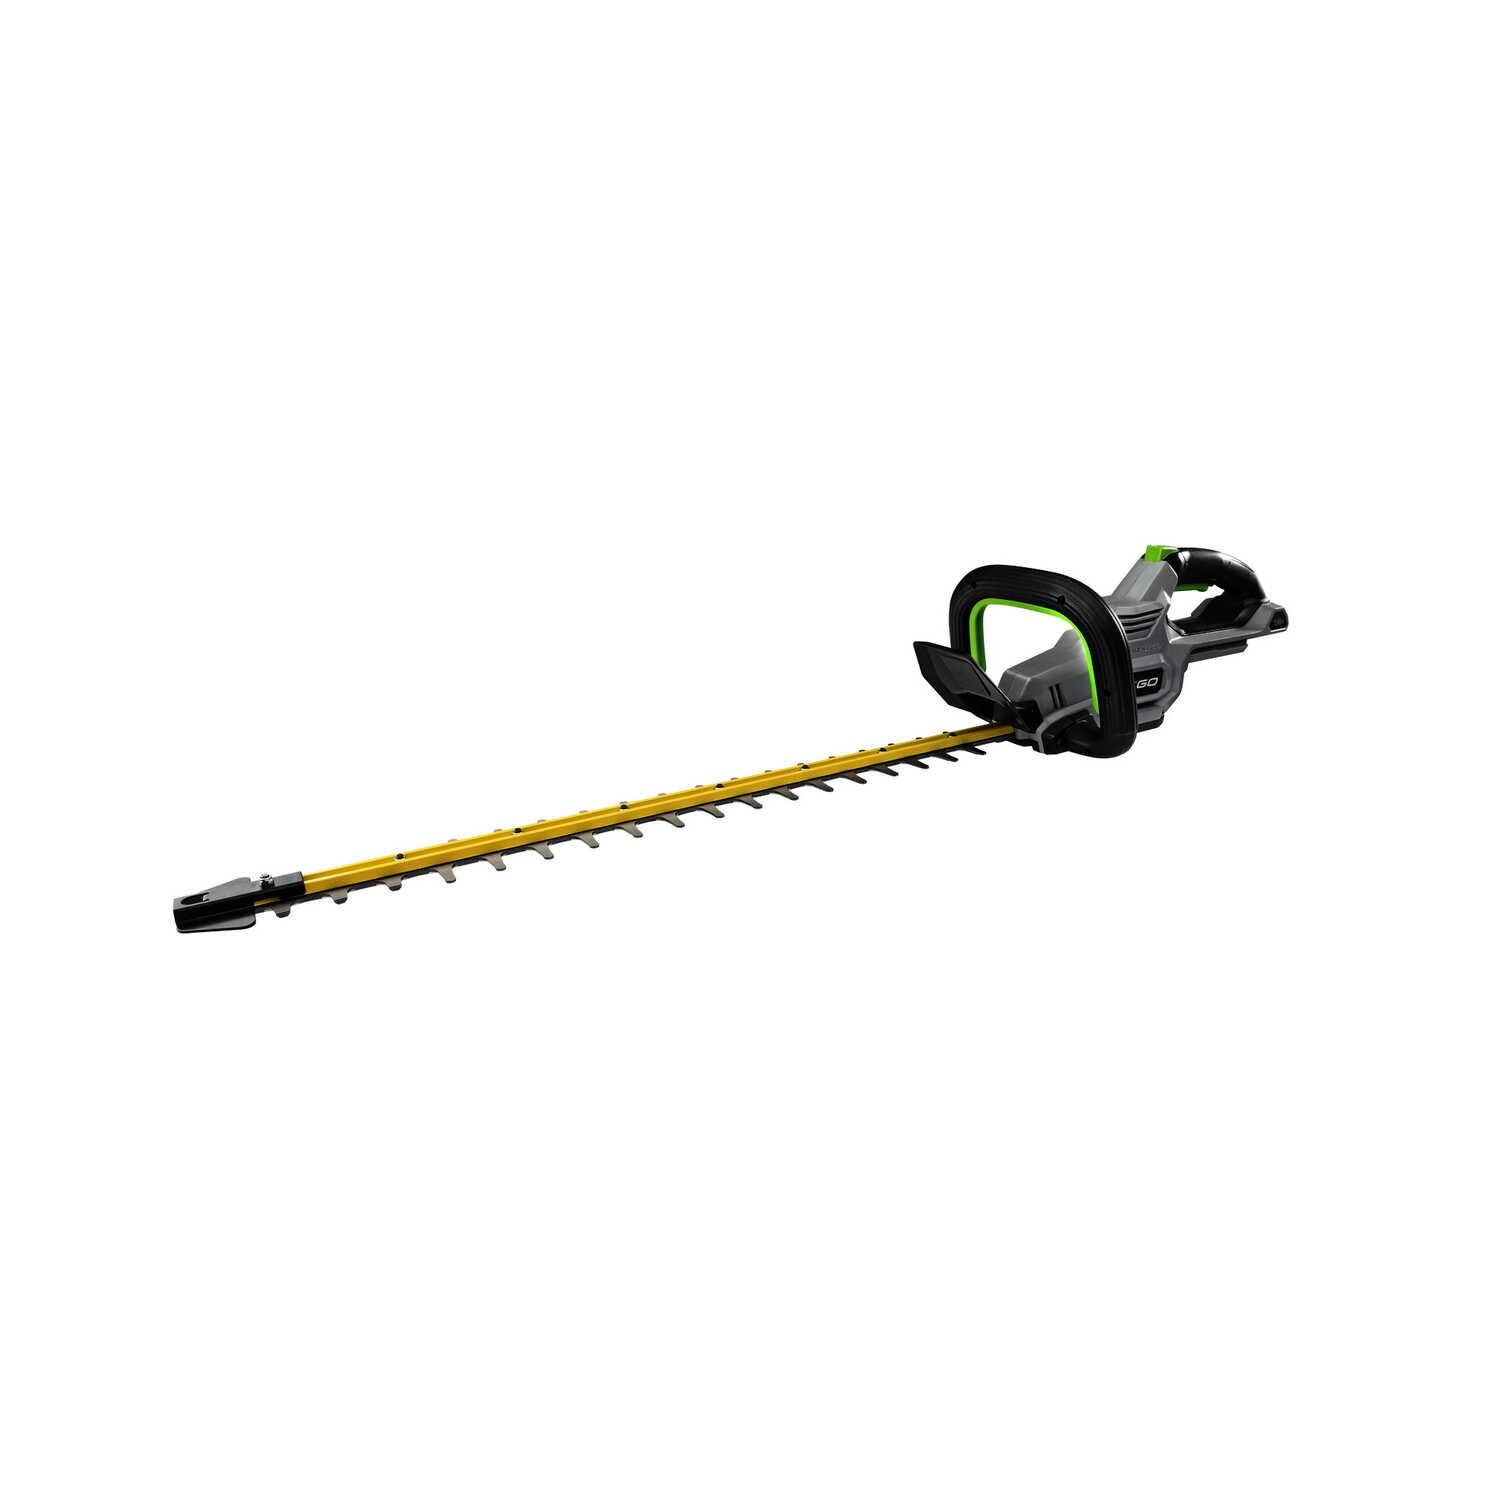 EGO  Power Plus  24 in. L 56 volt Battery  Hedge Trimmer Bare Tool